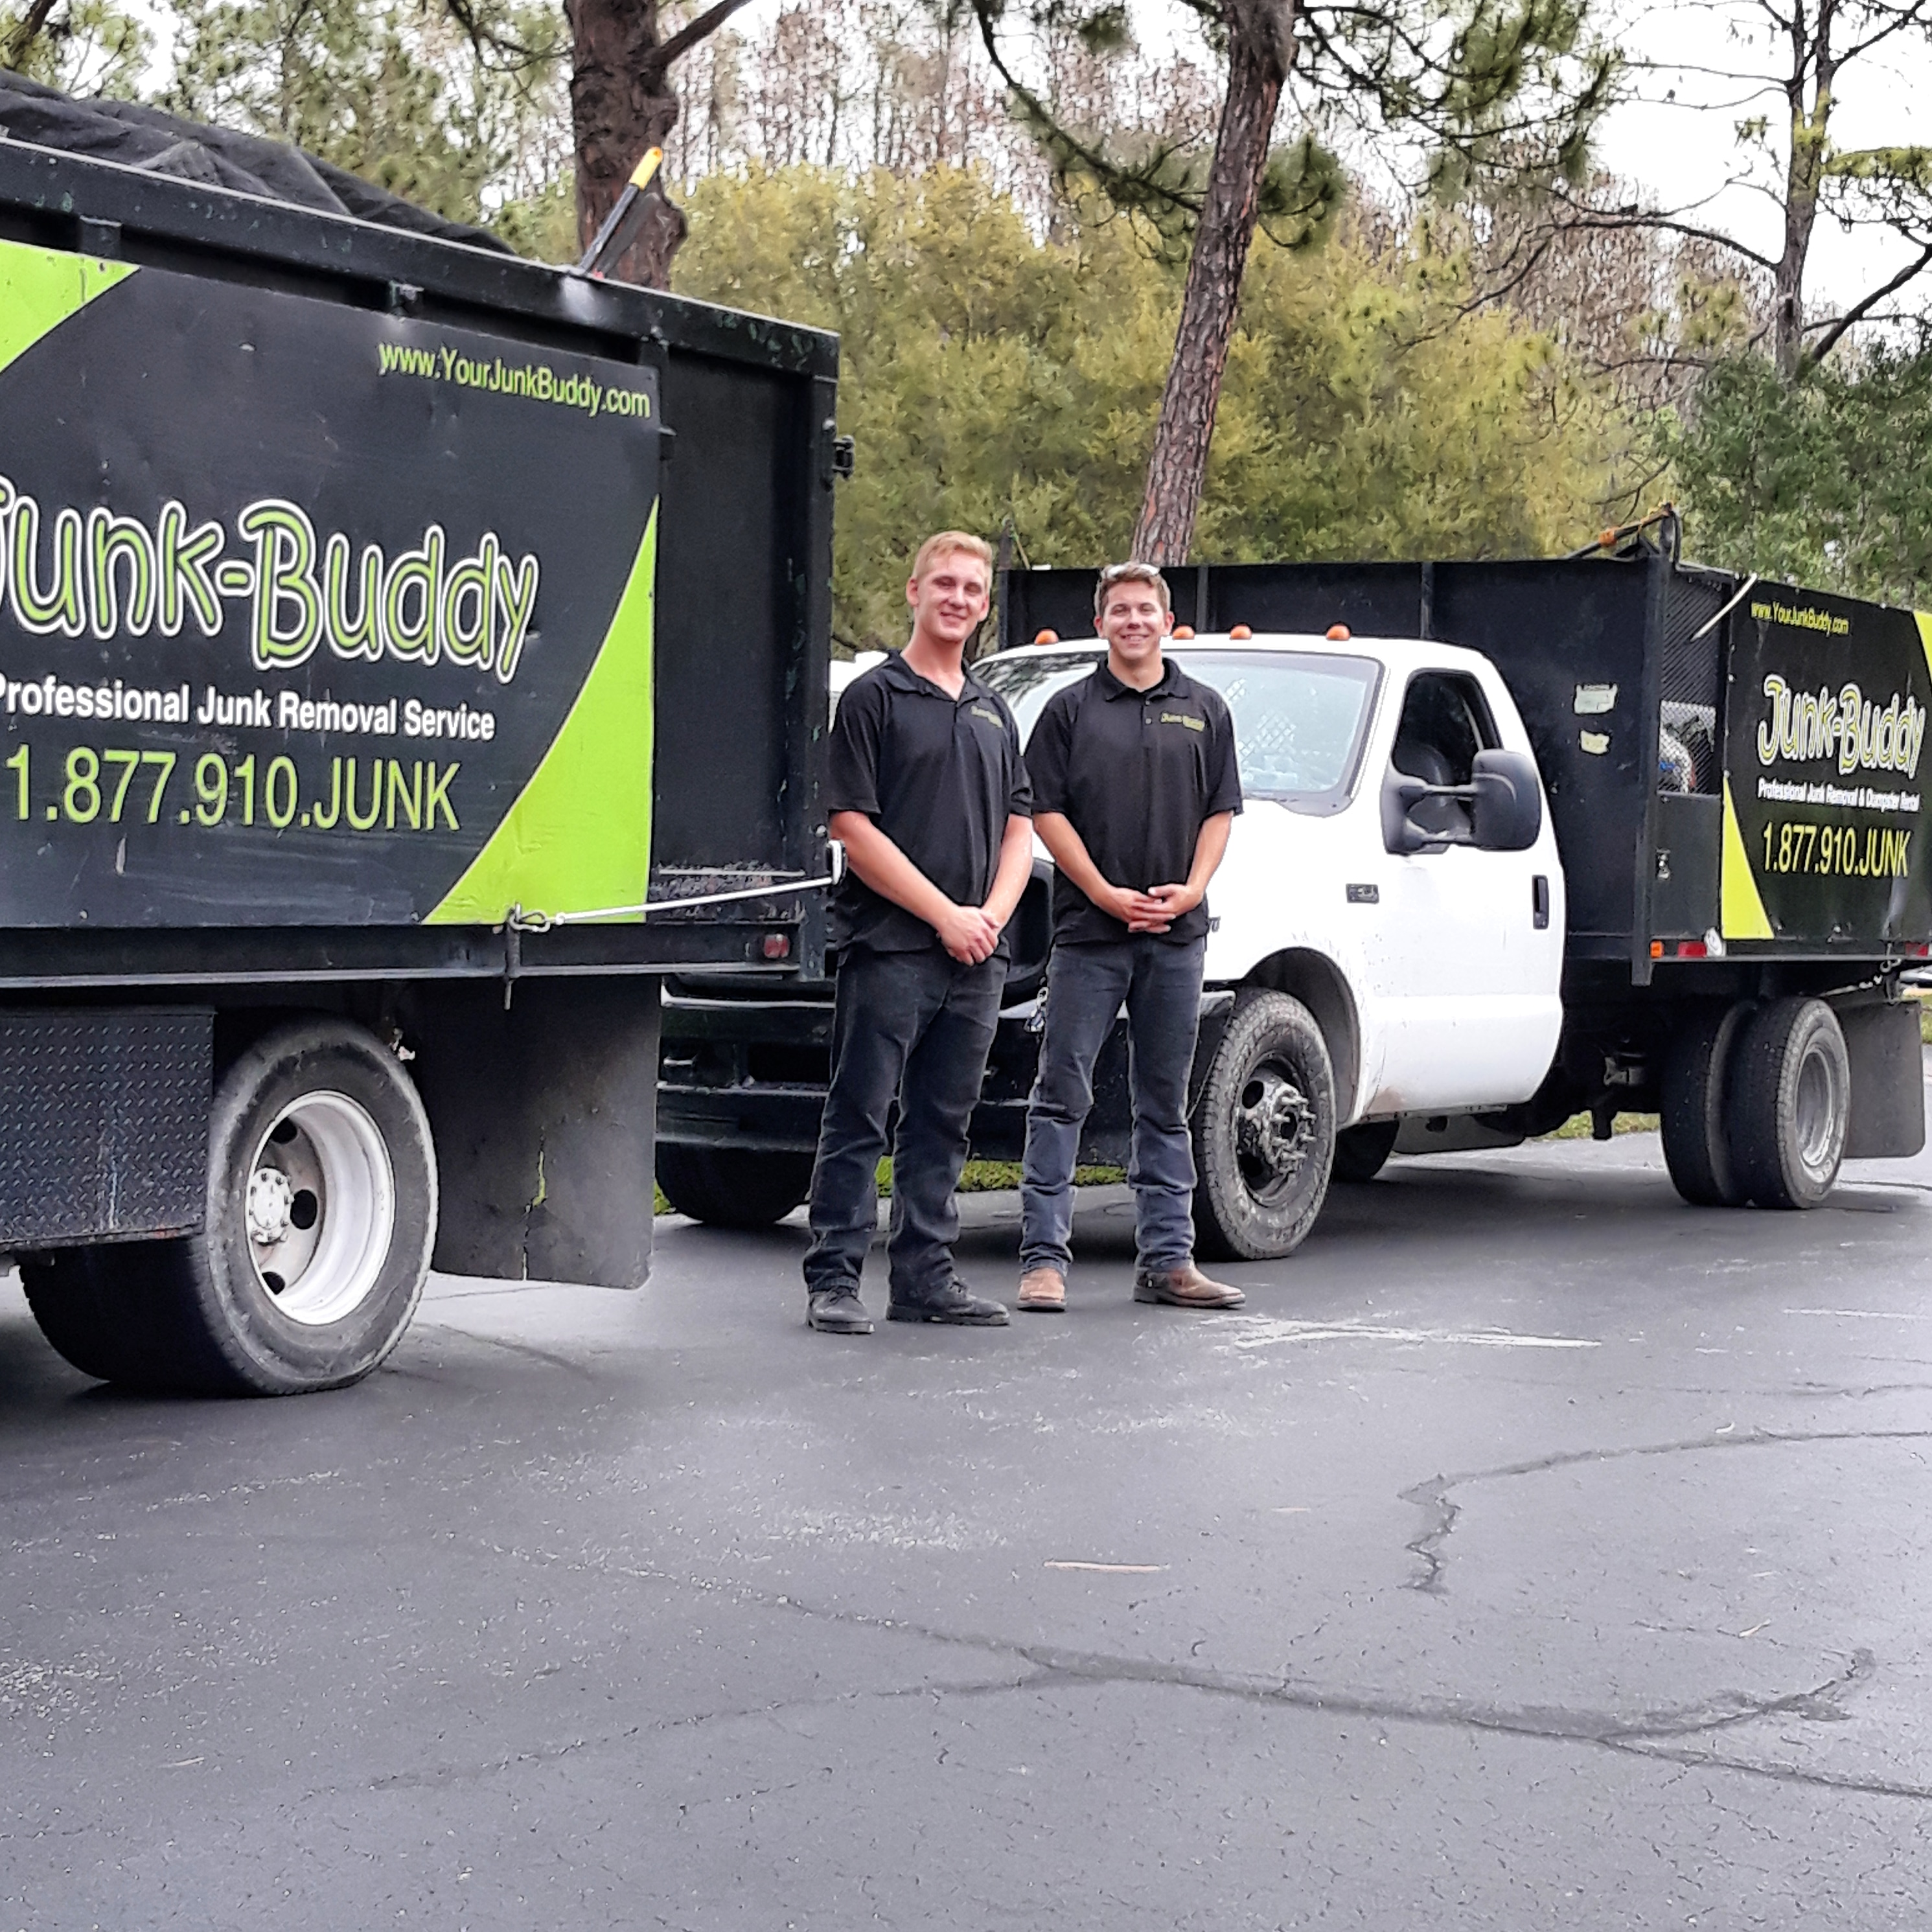 Junk Removal and hauling Carrollwood Florida